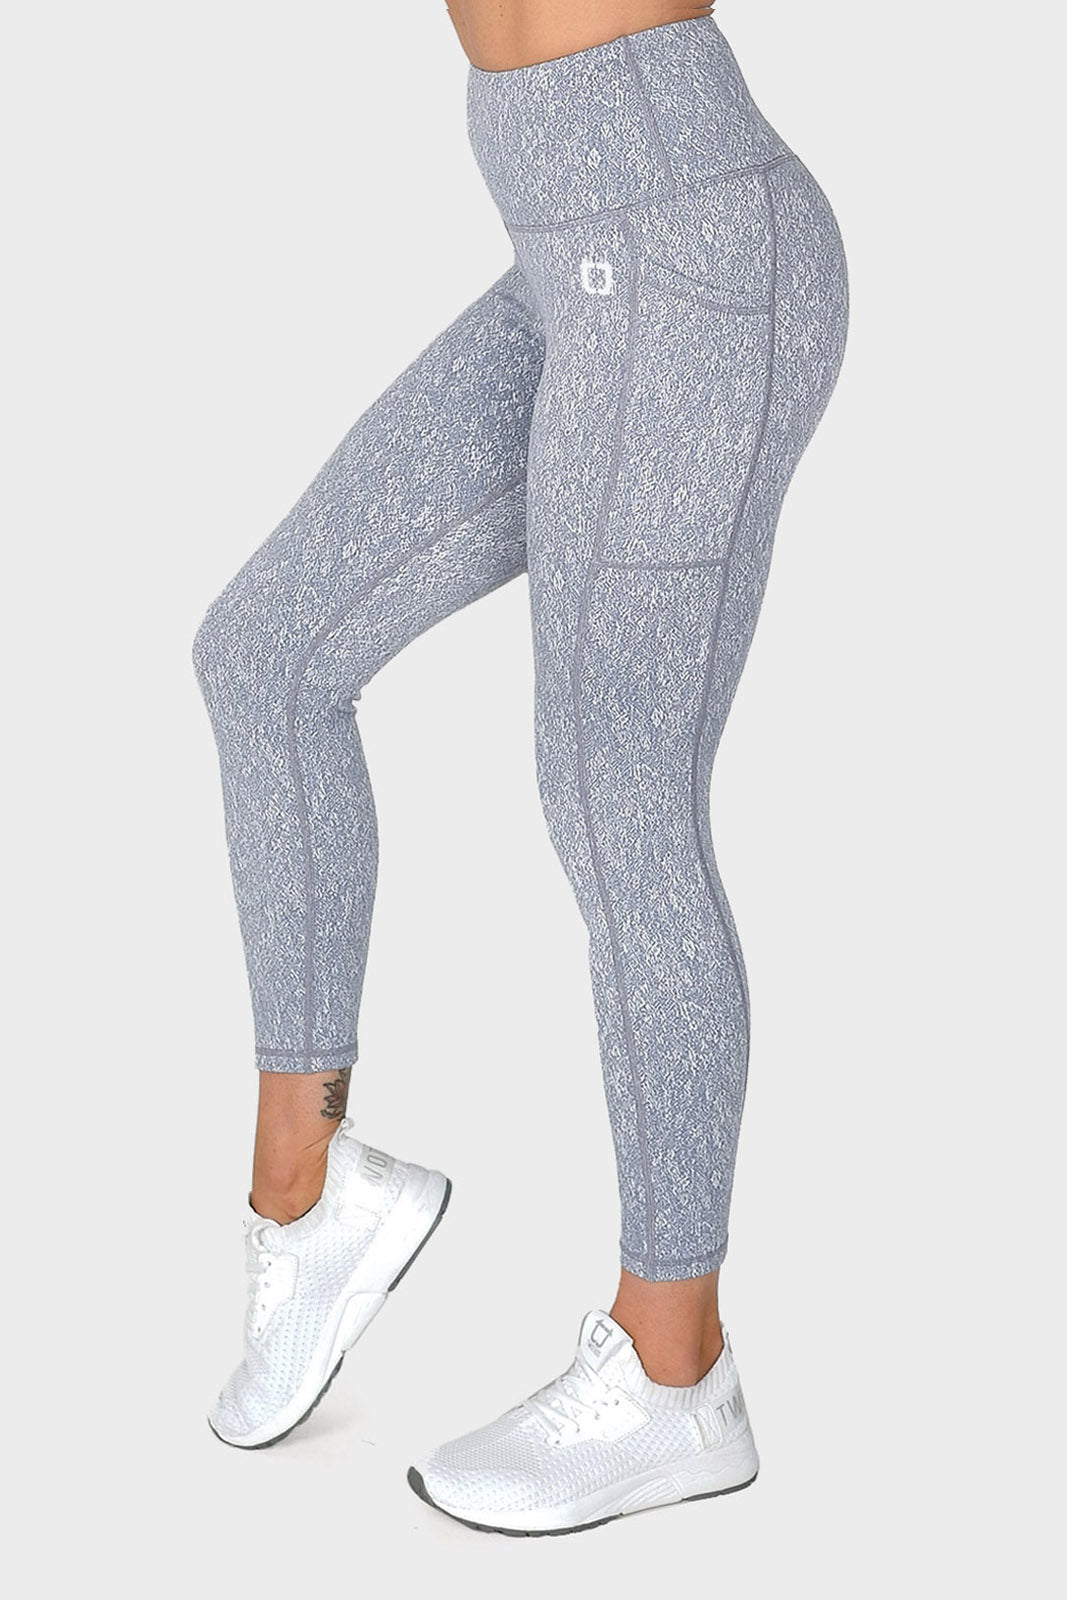 Deluxe 8/9 Highwaisted Leggings - Sky